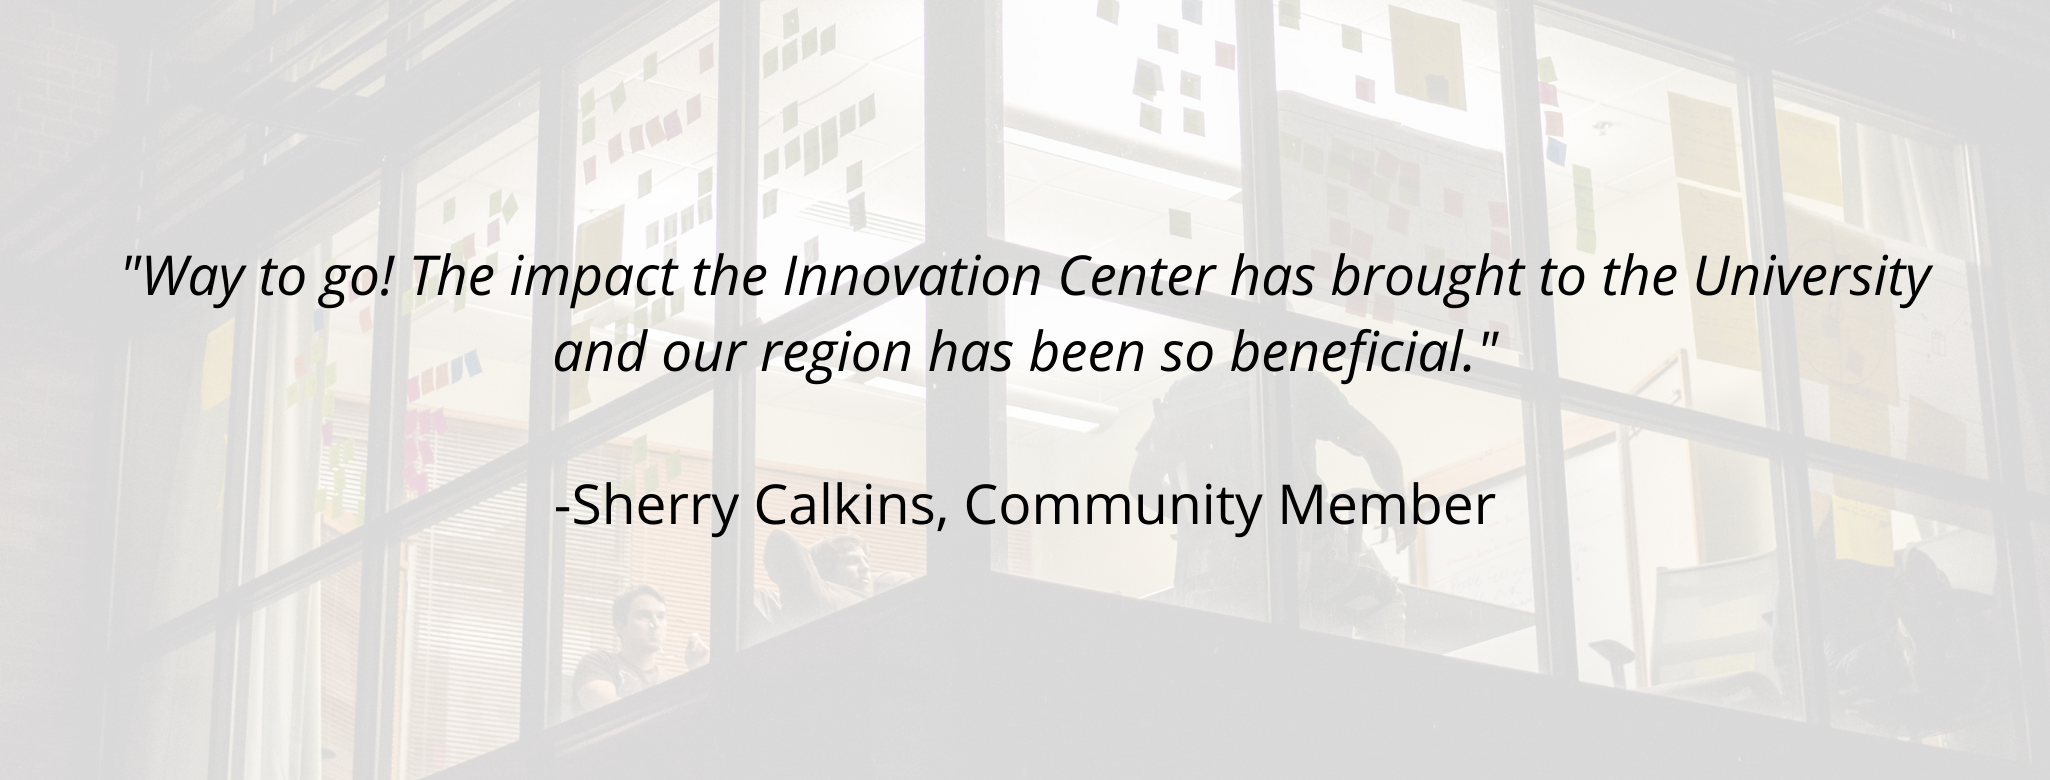 """""""Way to go! The impact the Innovation Center has brought to the University and our region has been so beneficial.""""  -Sherry Calkins, Community Member"""